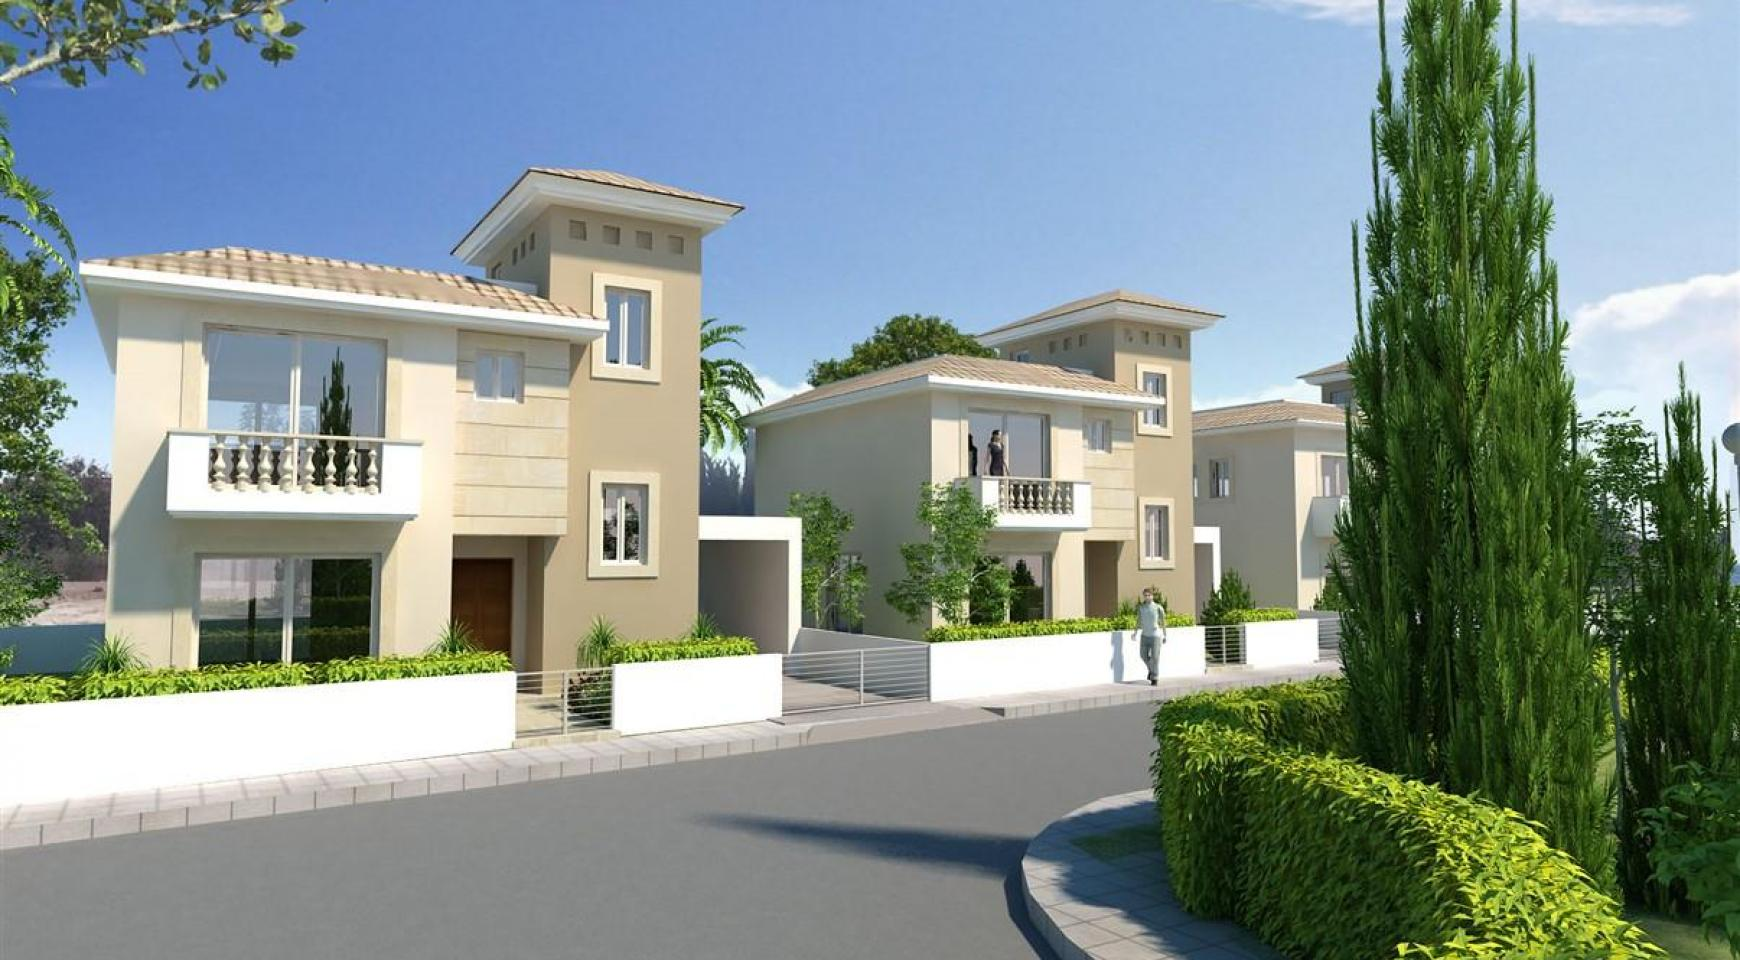 3 Bedroom Villa in a New Project - 23